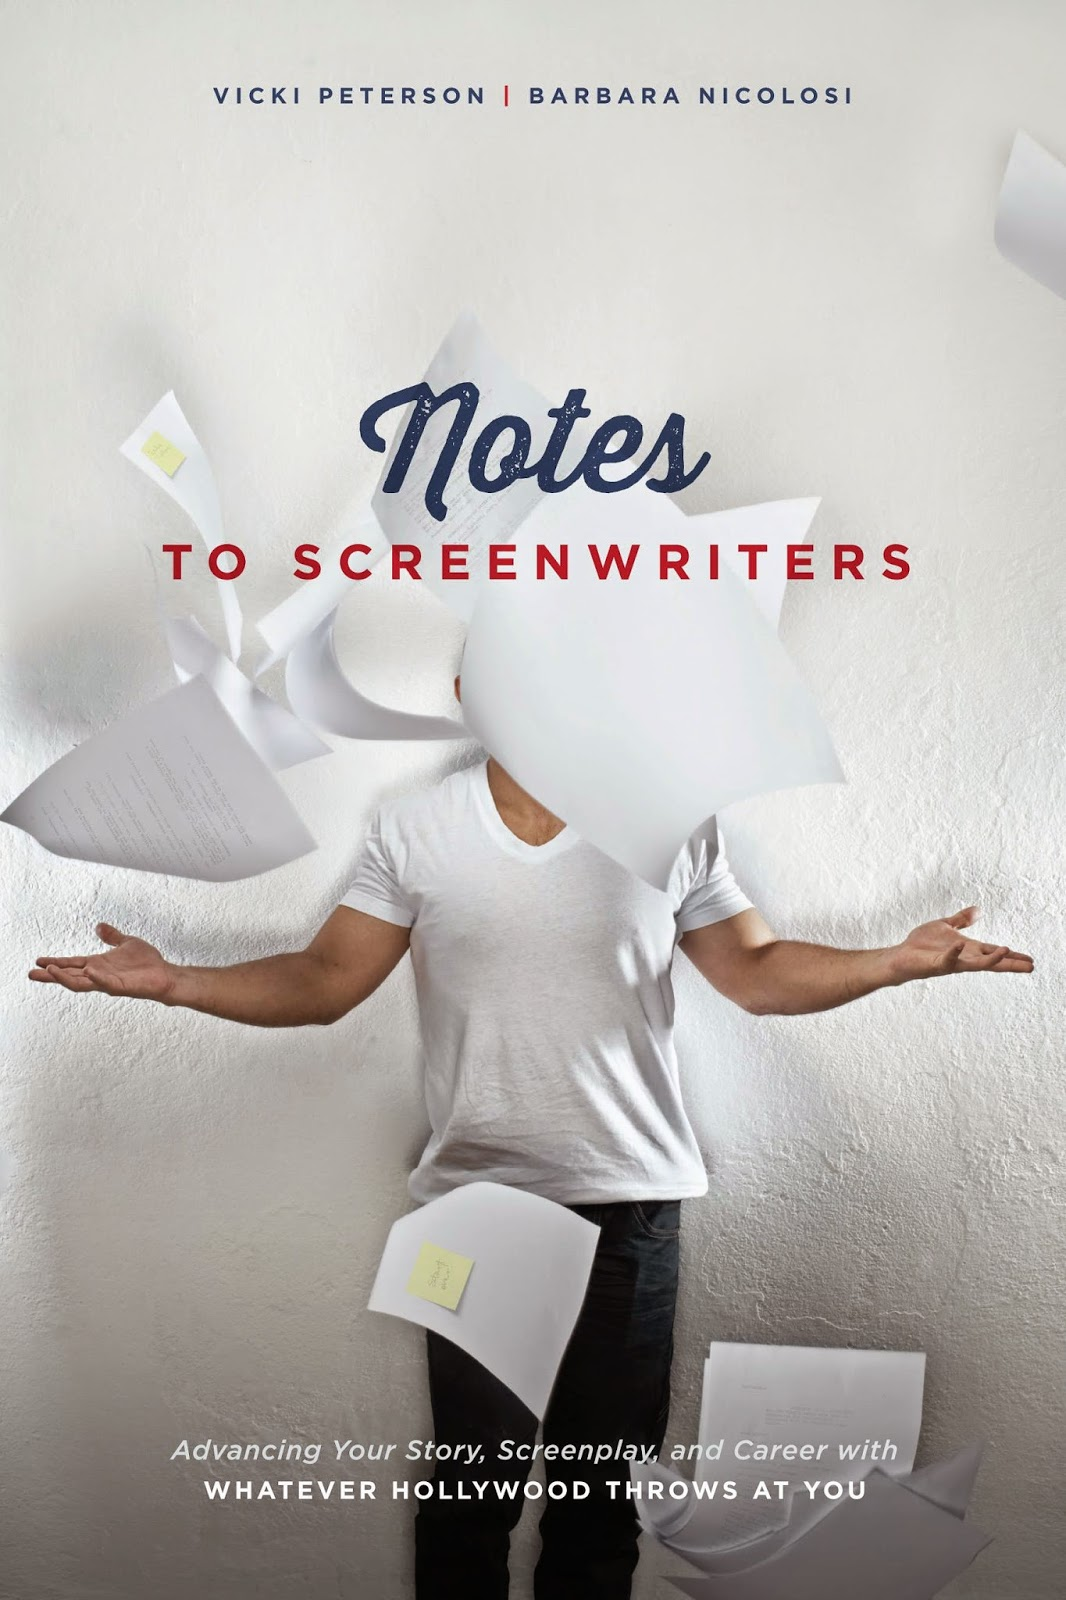 Career as a screenplay writer, how can I prepare?